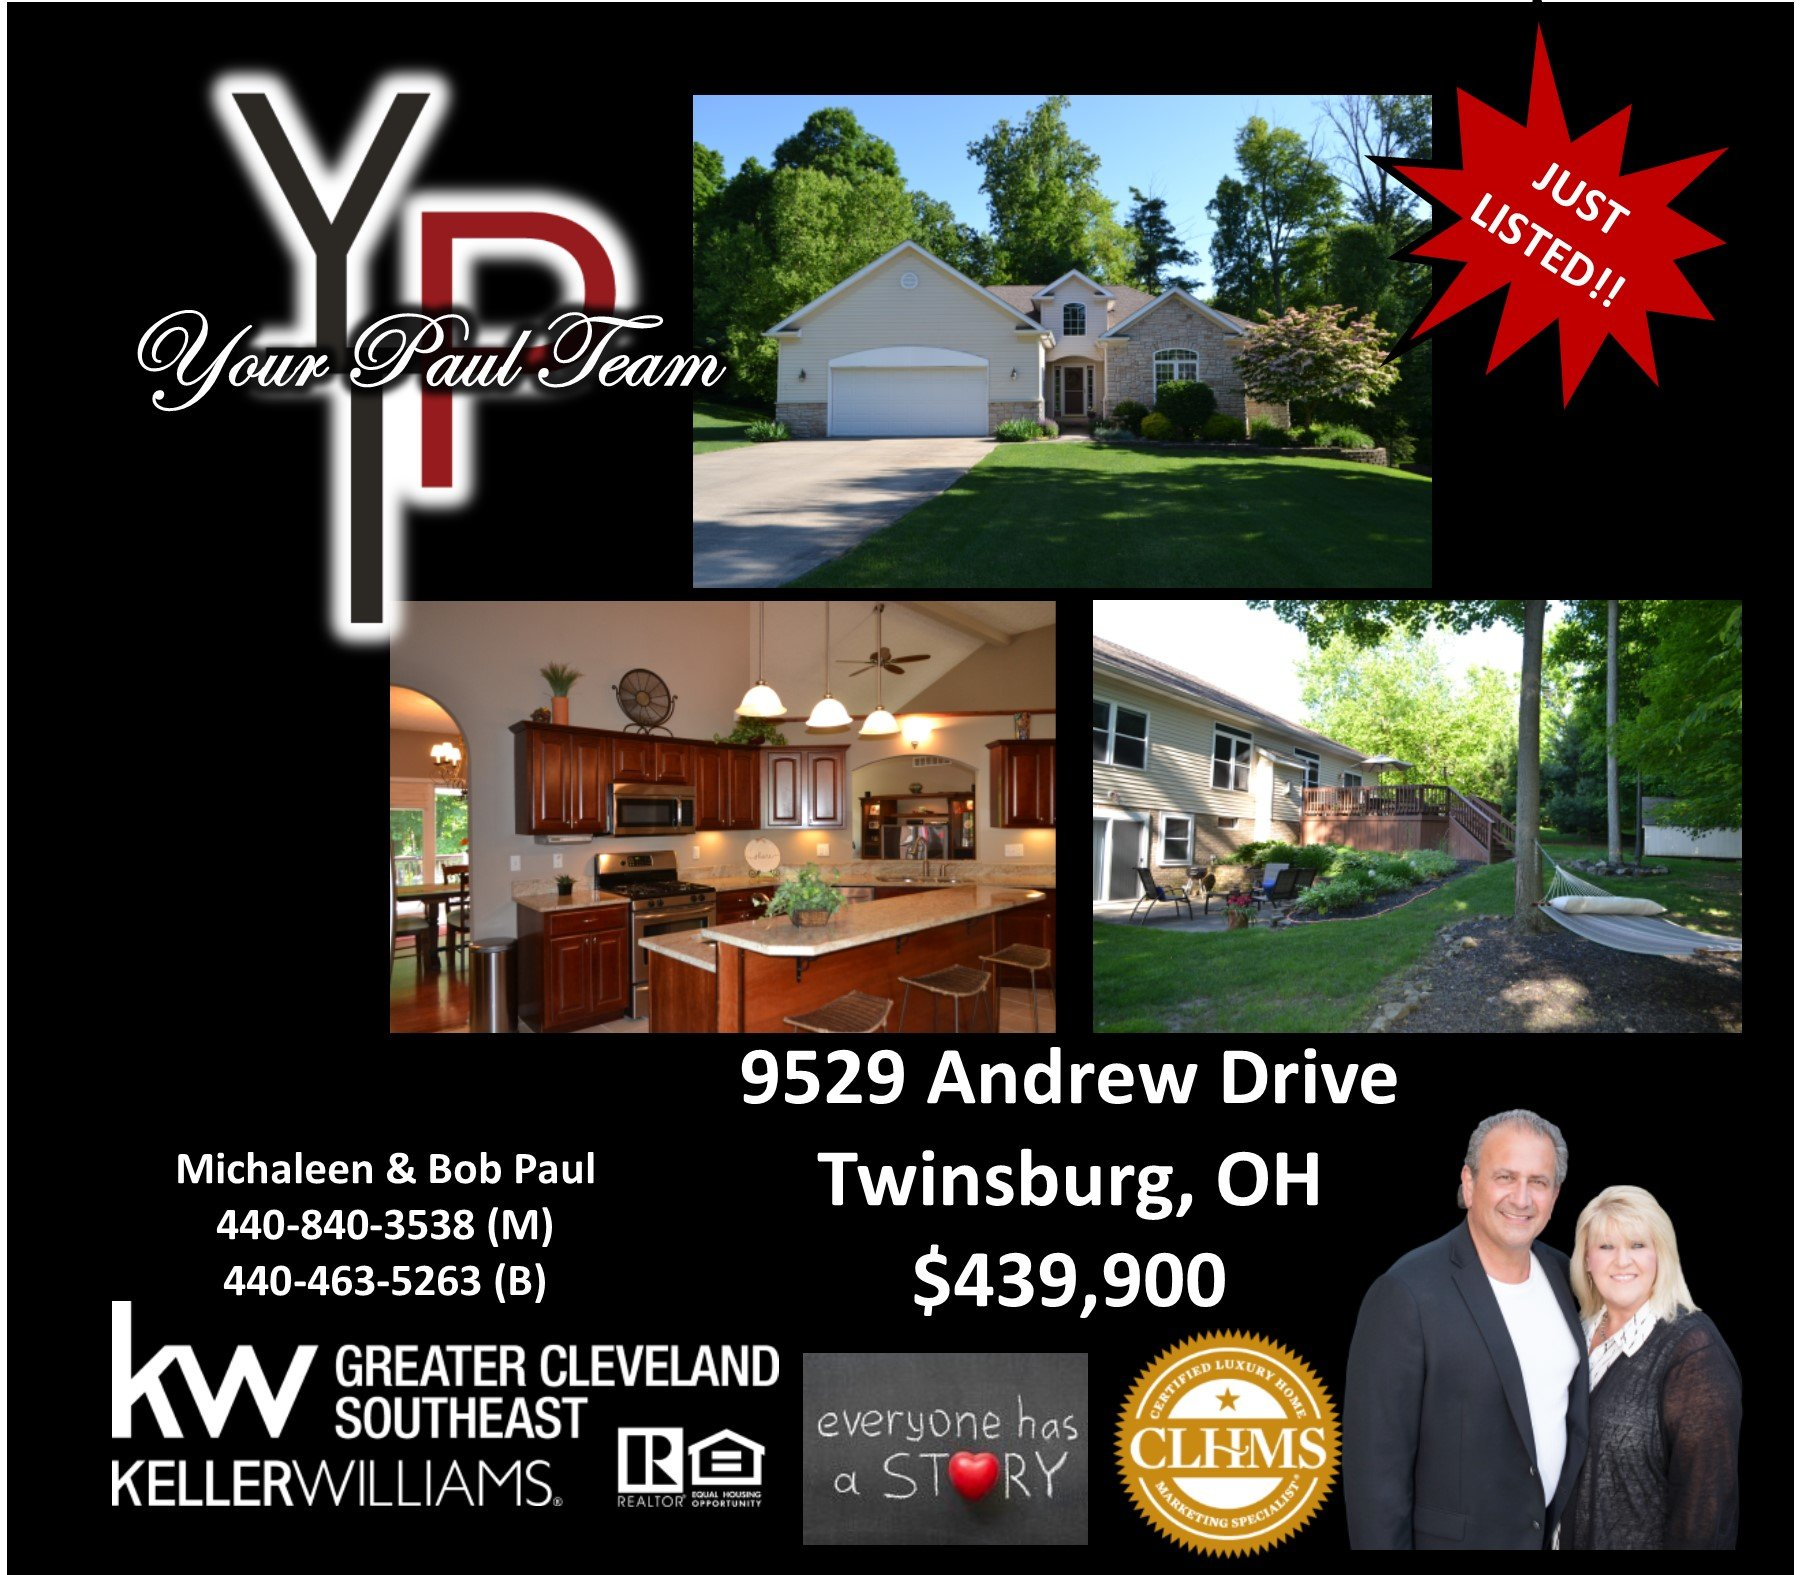 New Listing! 9529 Andrew Drive – Twinsburg!